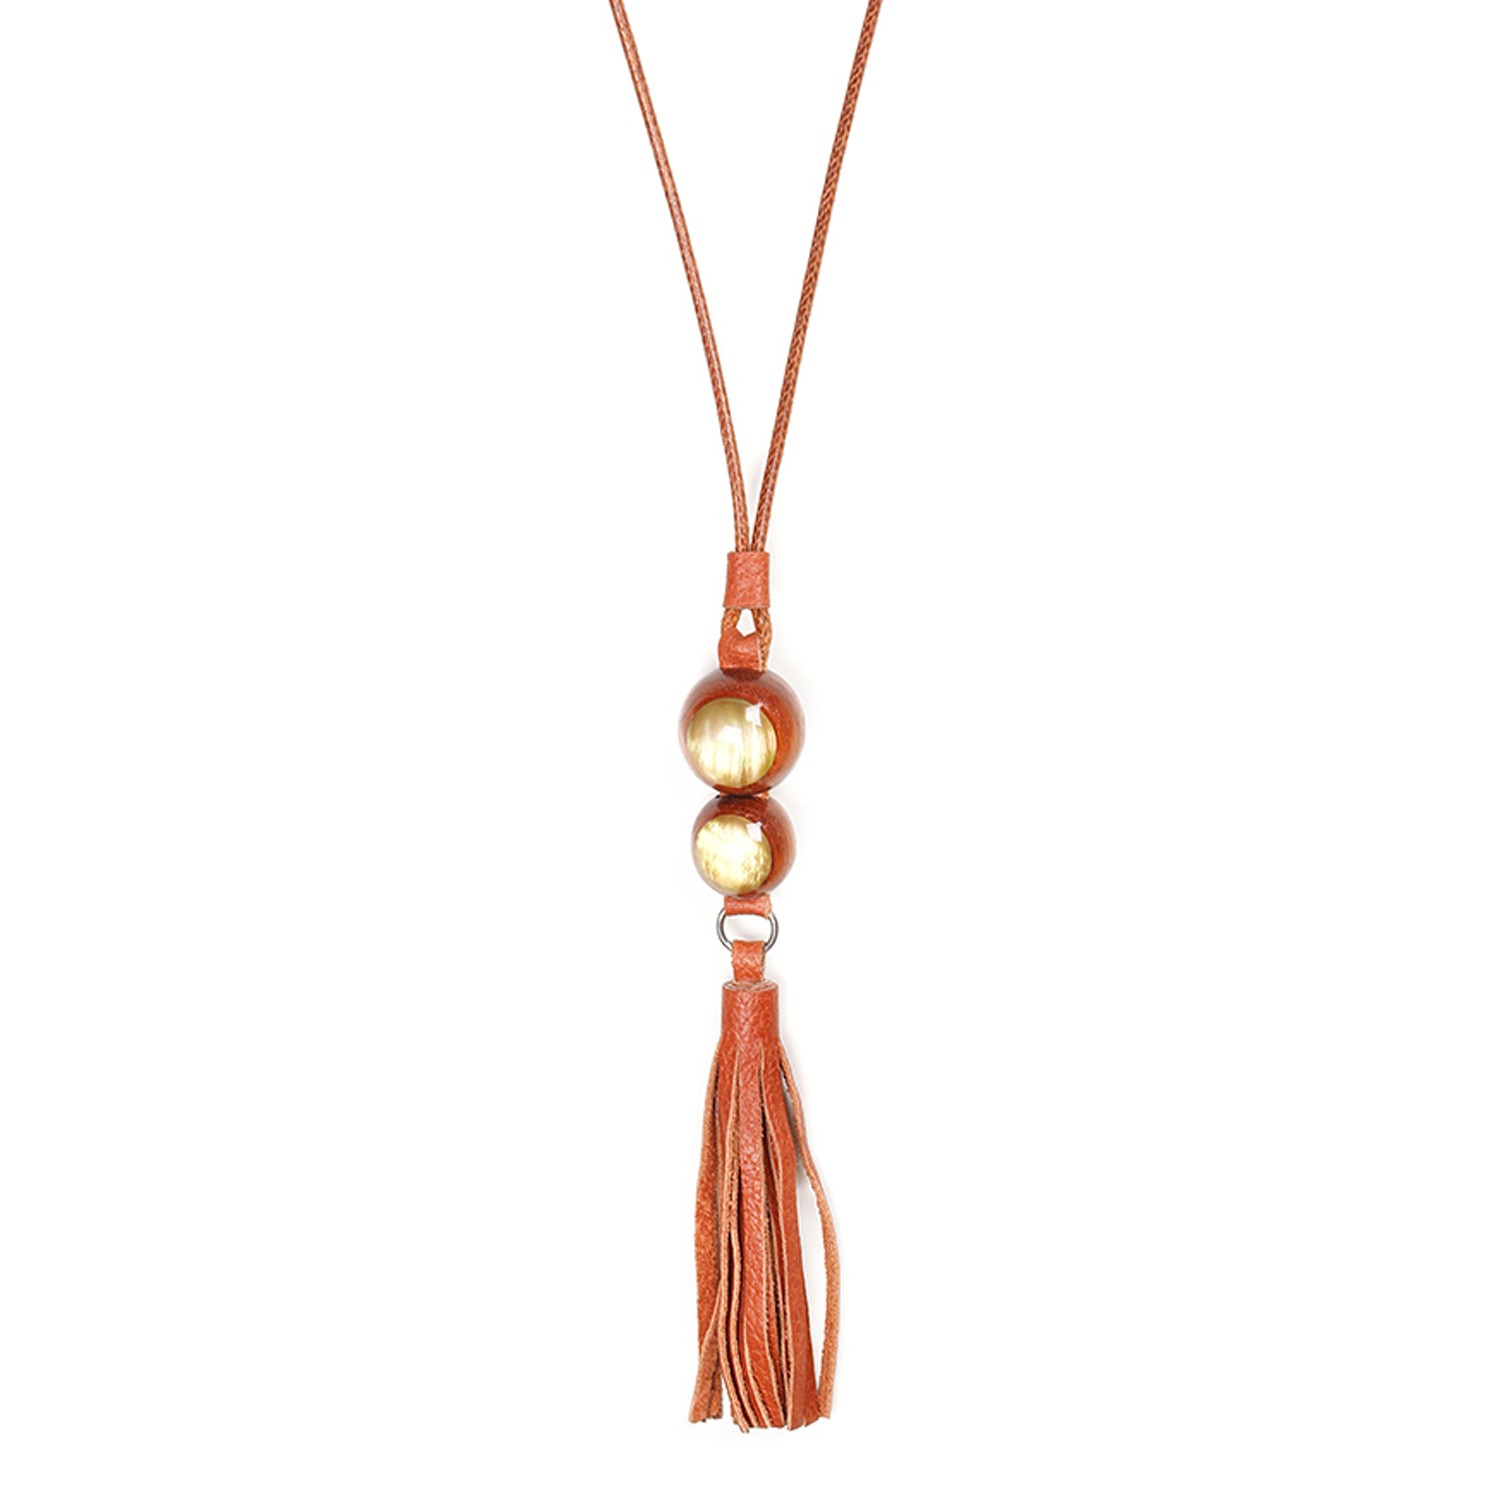 ROUSSETTE collier long